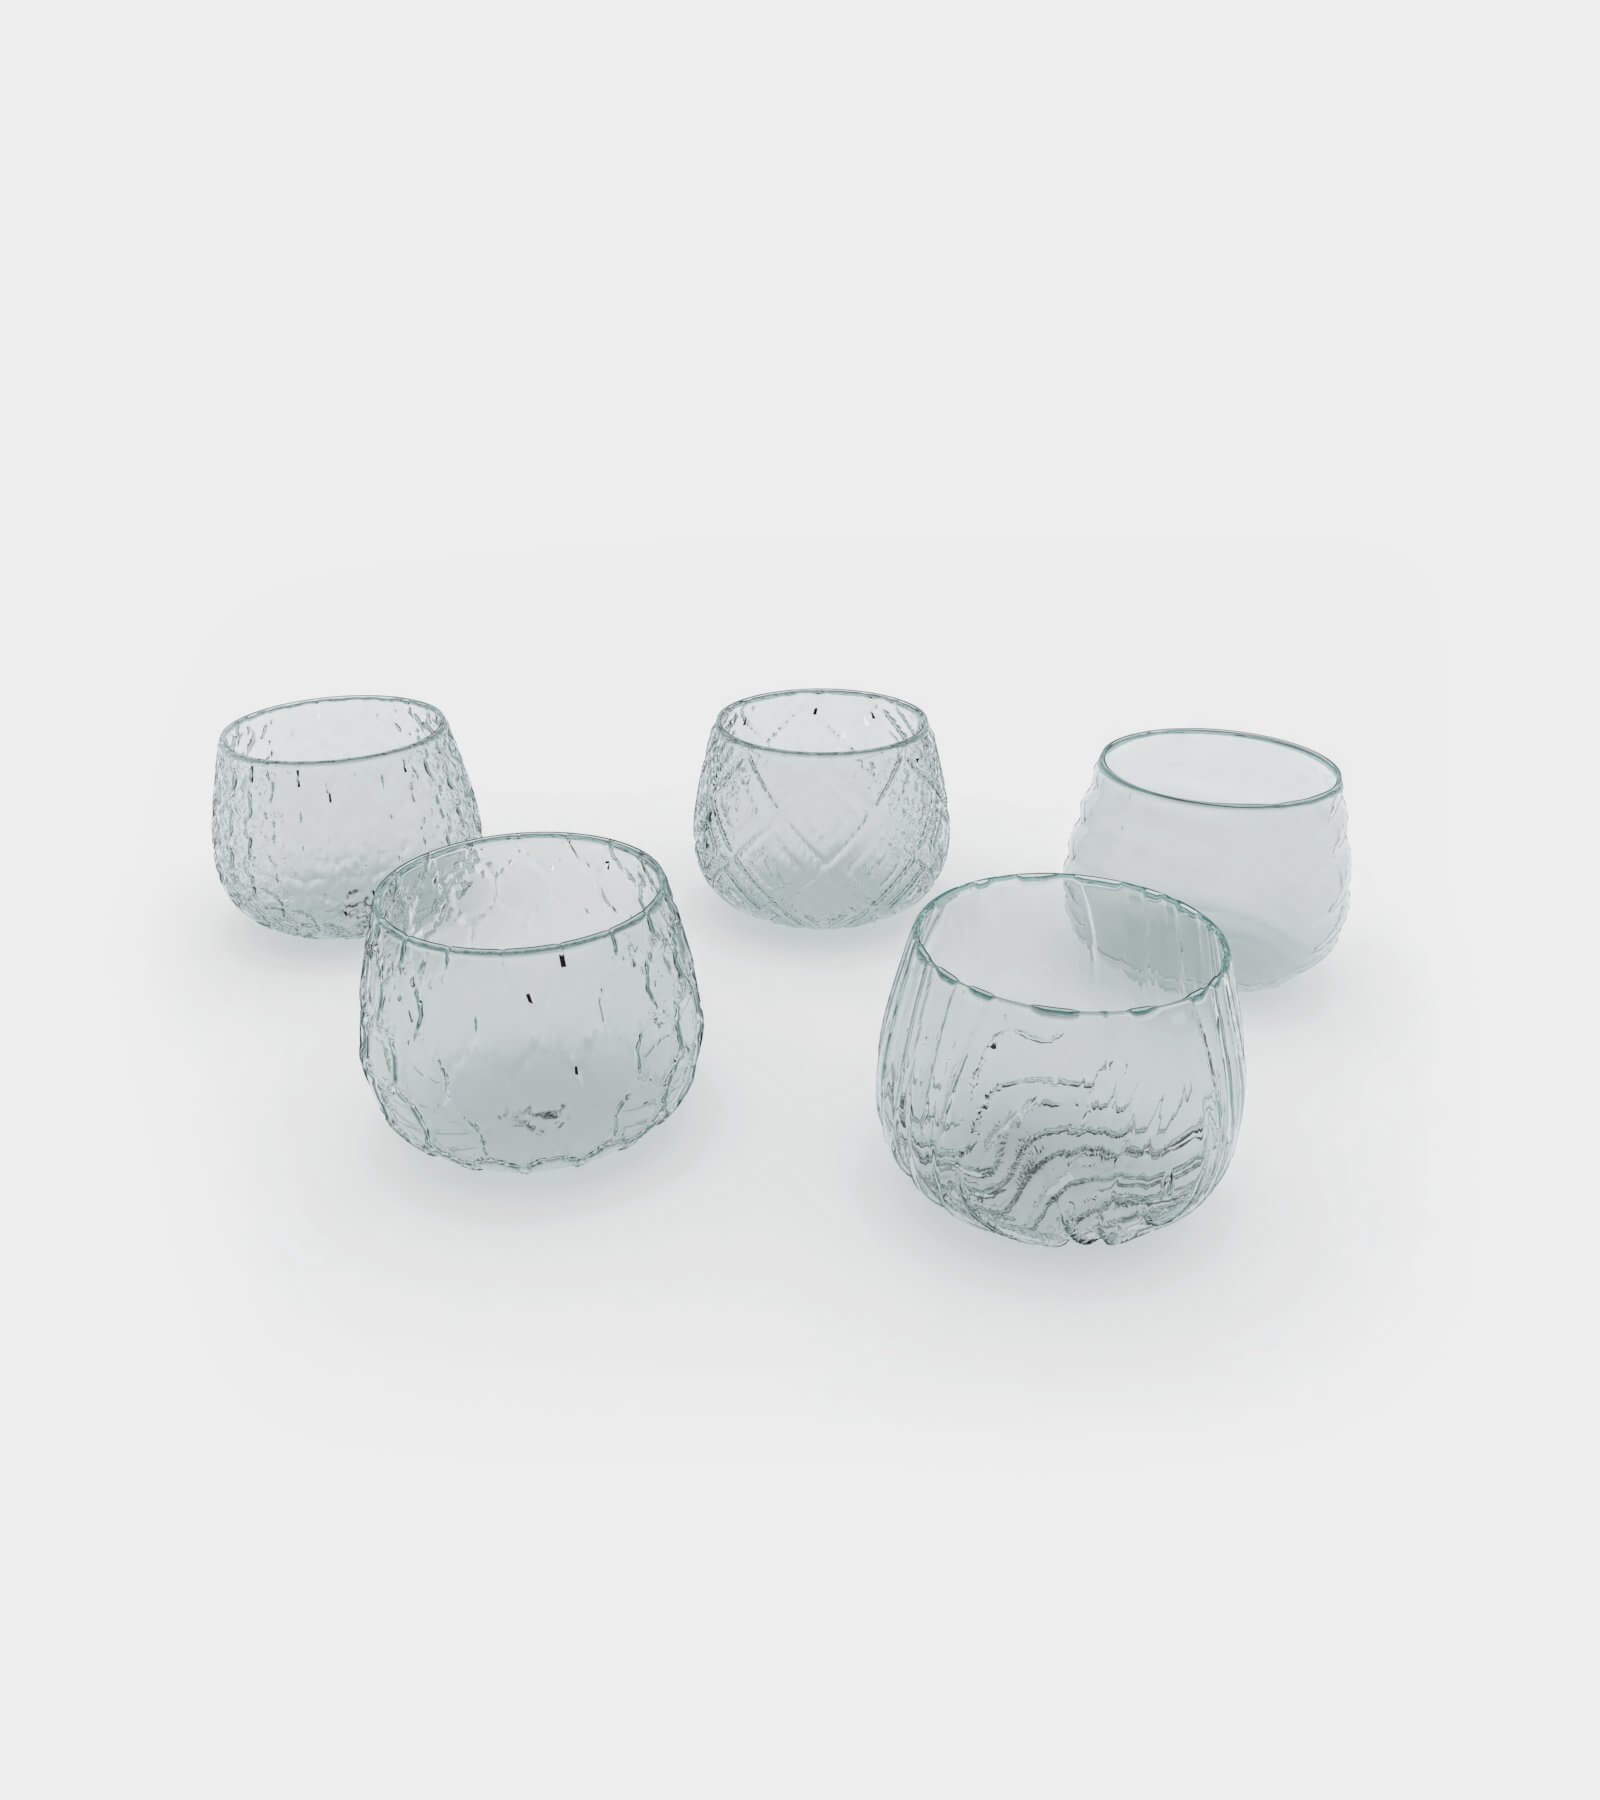 Different water and wine glasses with patterns 1 - 3D Model